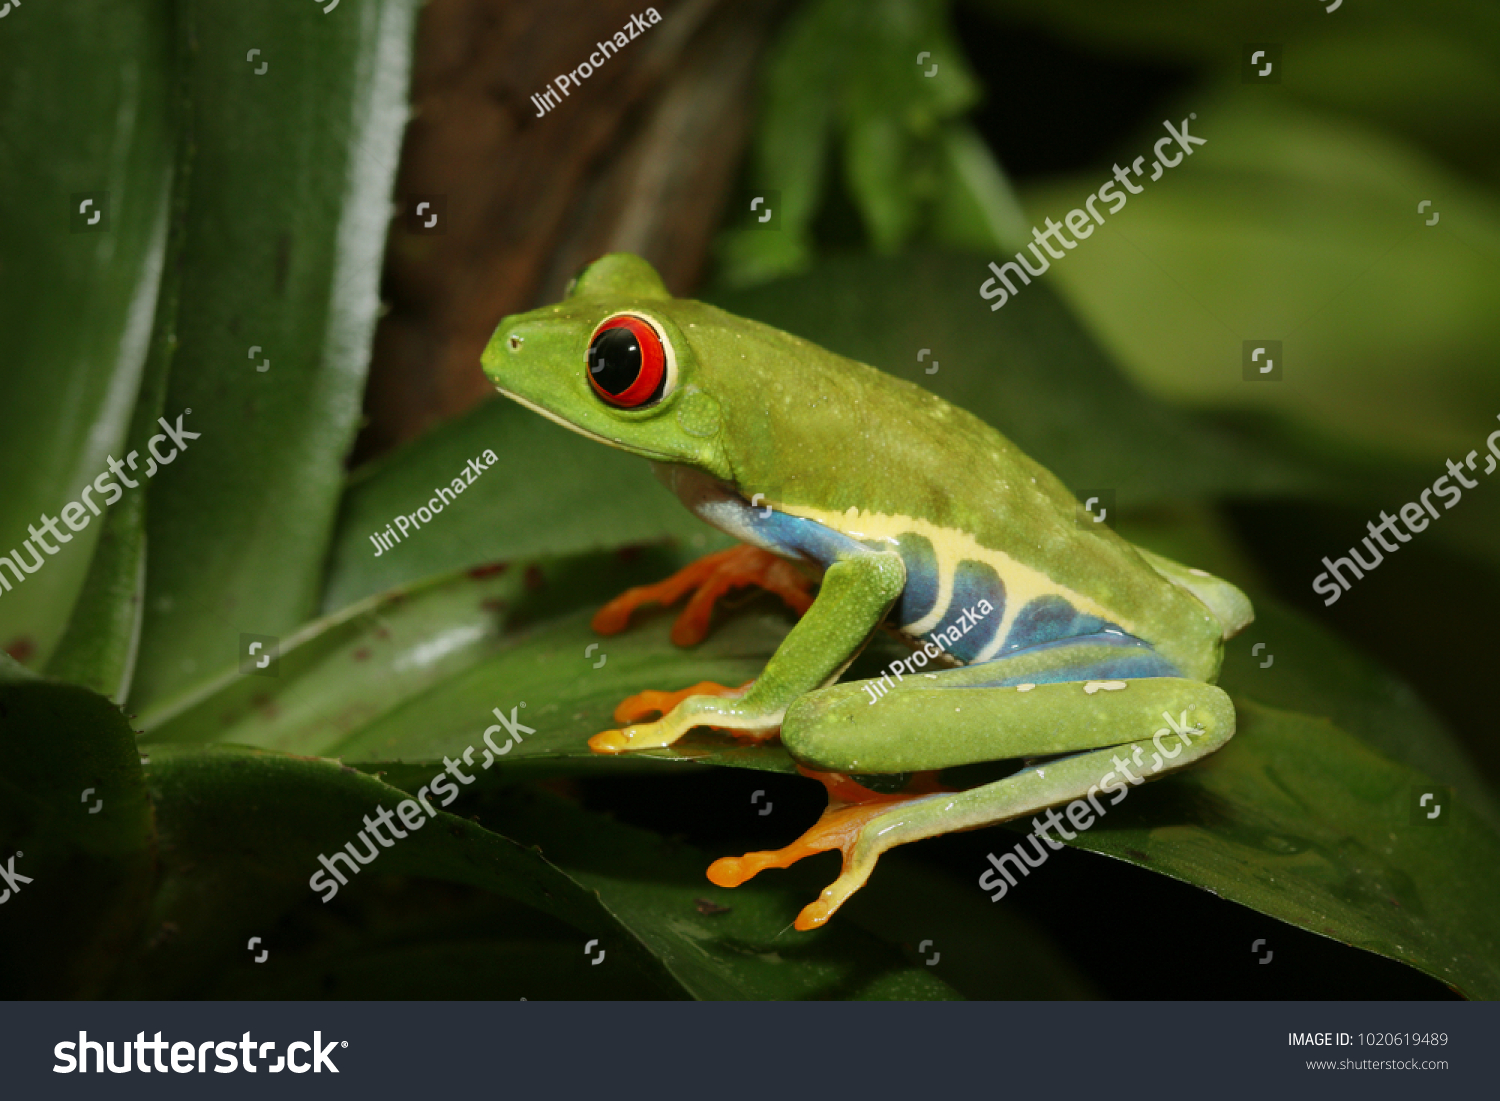 Redeyed Tree Frog Arboreal Hylid Native Stock Photo (Royalty Free ...